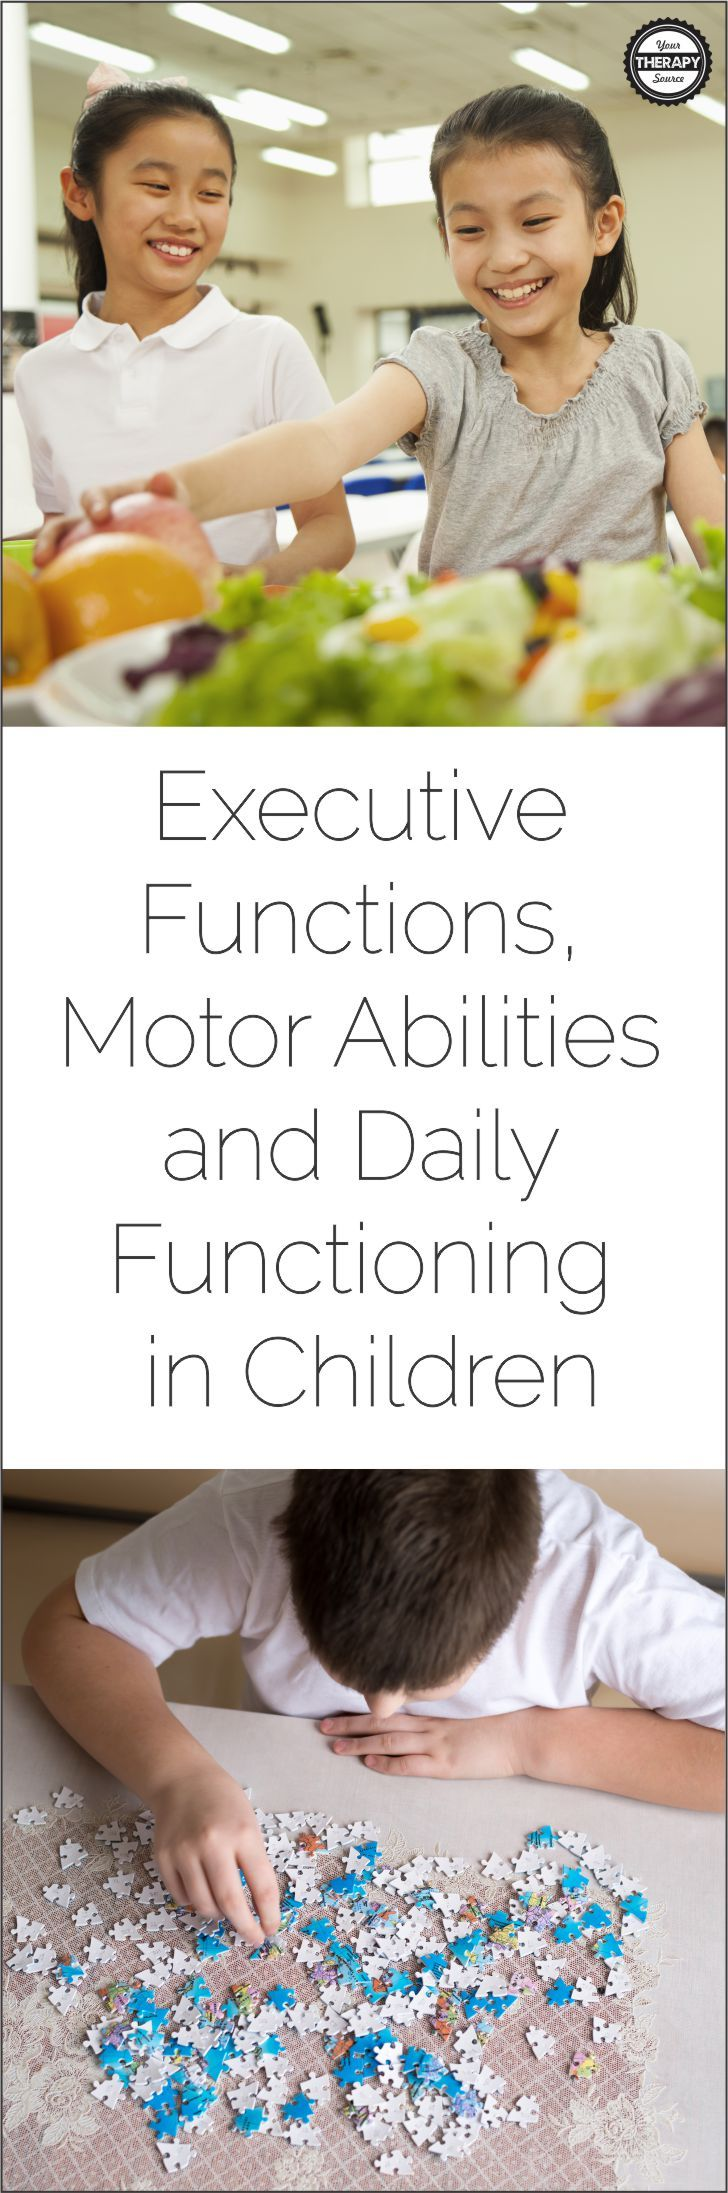 Executive Functions Motor Abilities and Daily Functioning